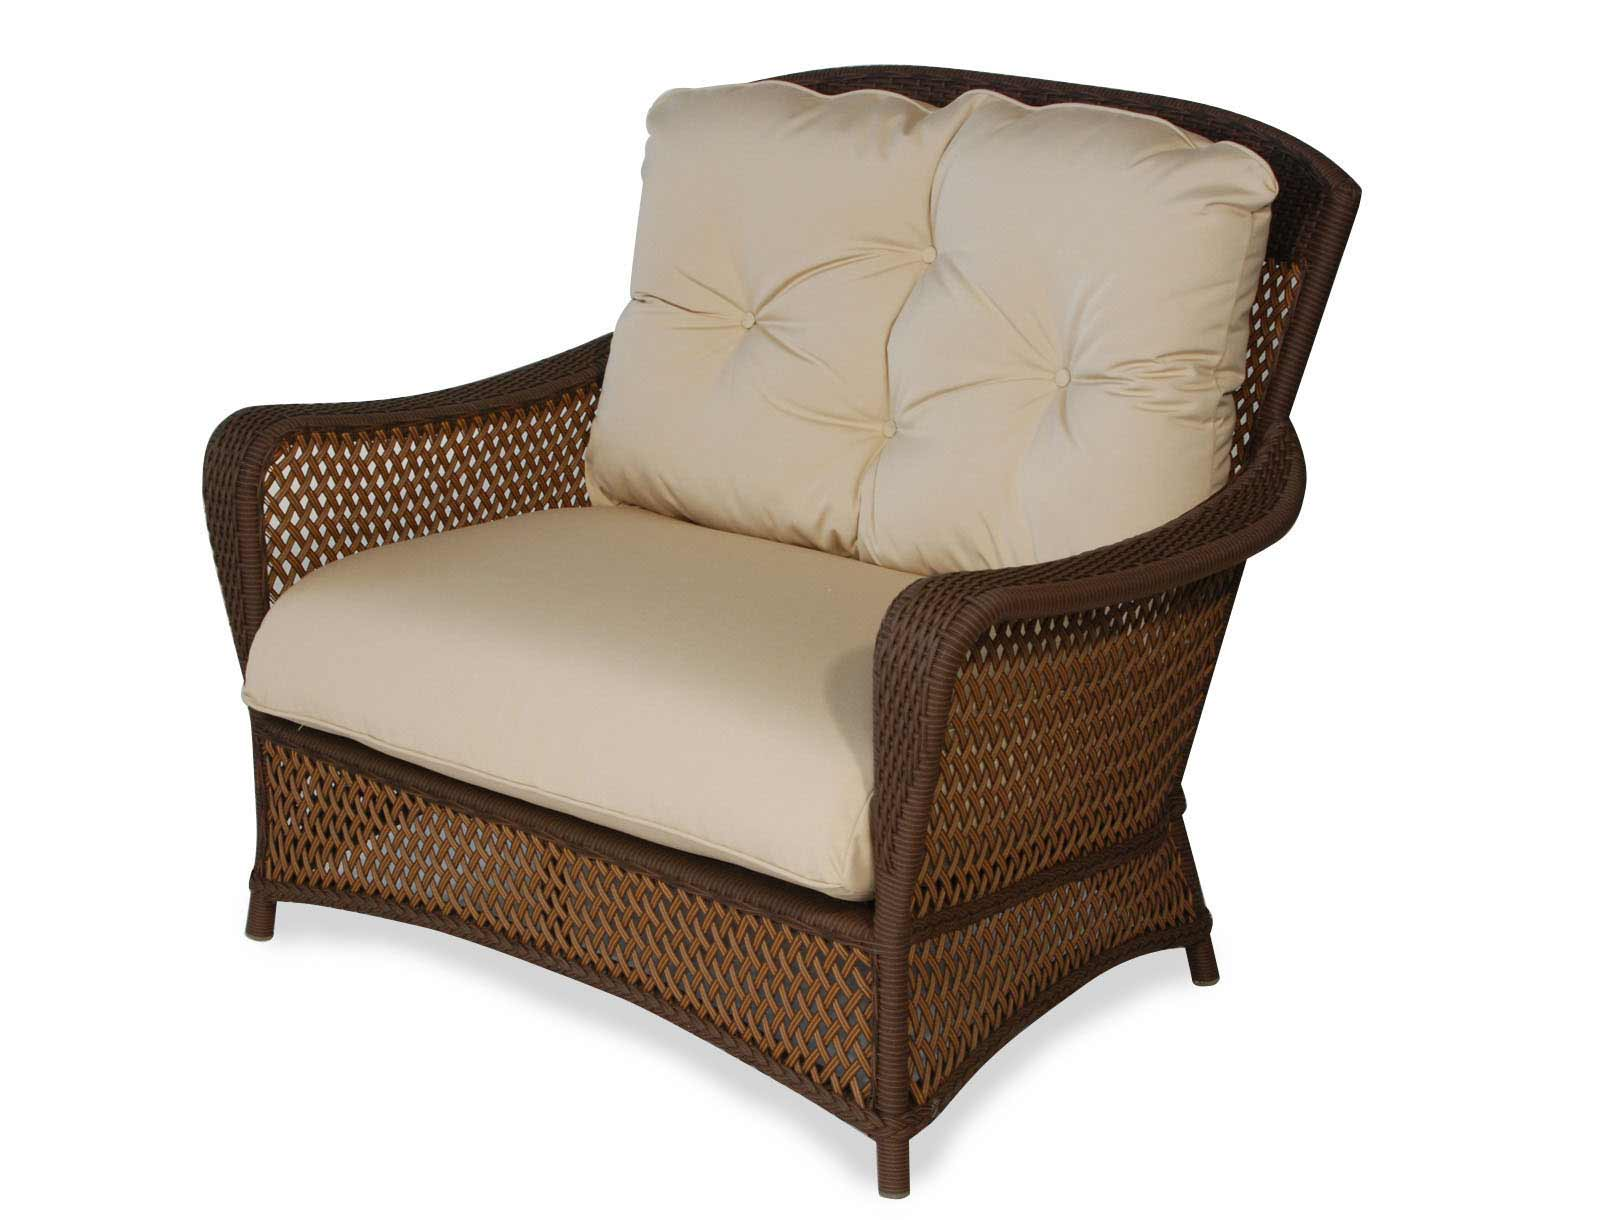 Image of: Patio Chair Cushion Design